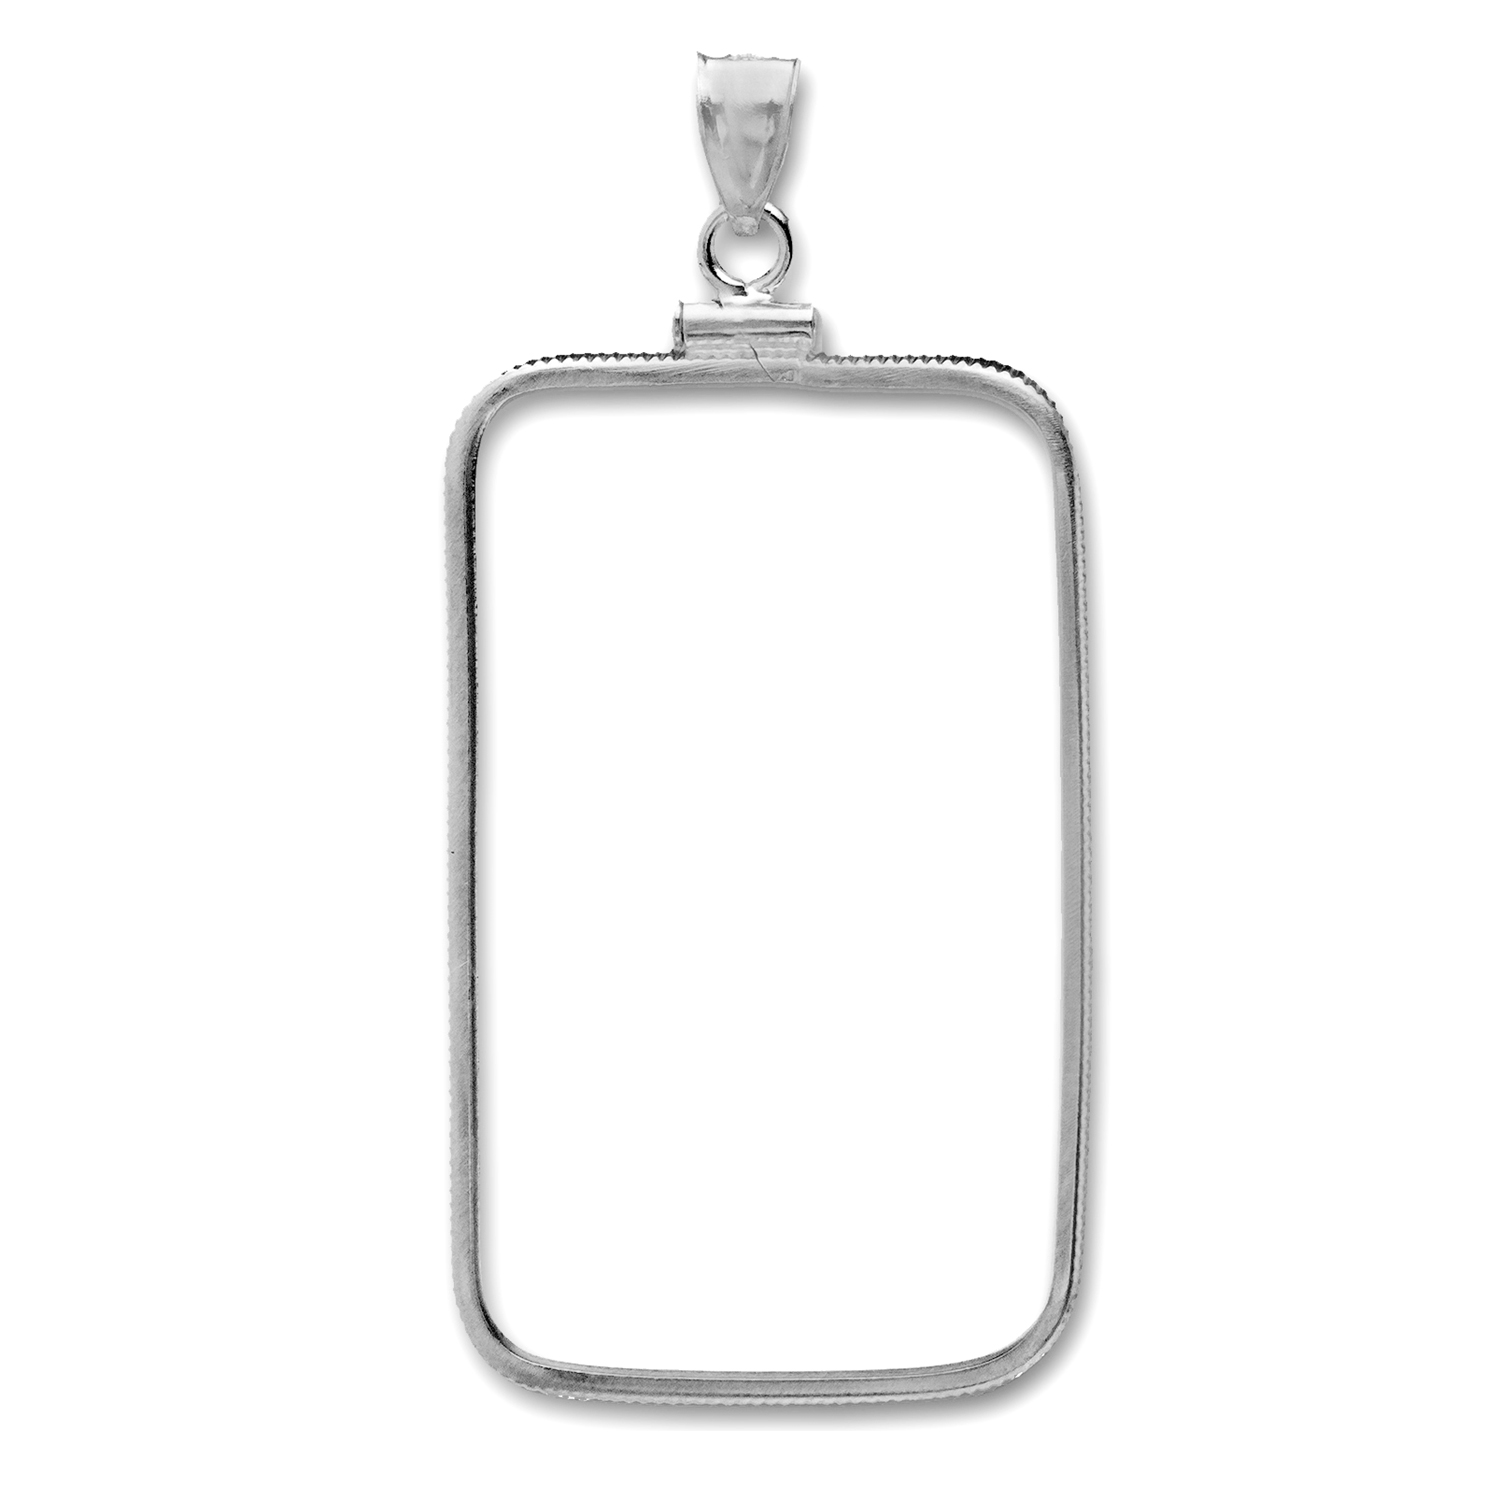 Sterling Silver Bezels (Fits 1 oz Bars) (Plain Front)